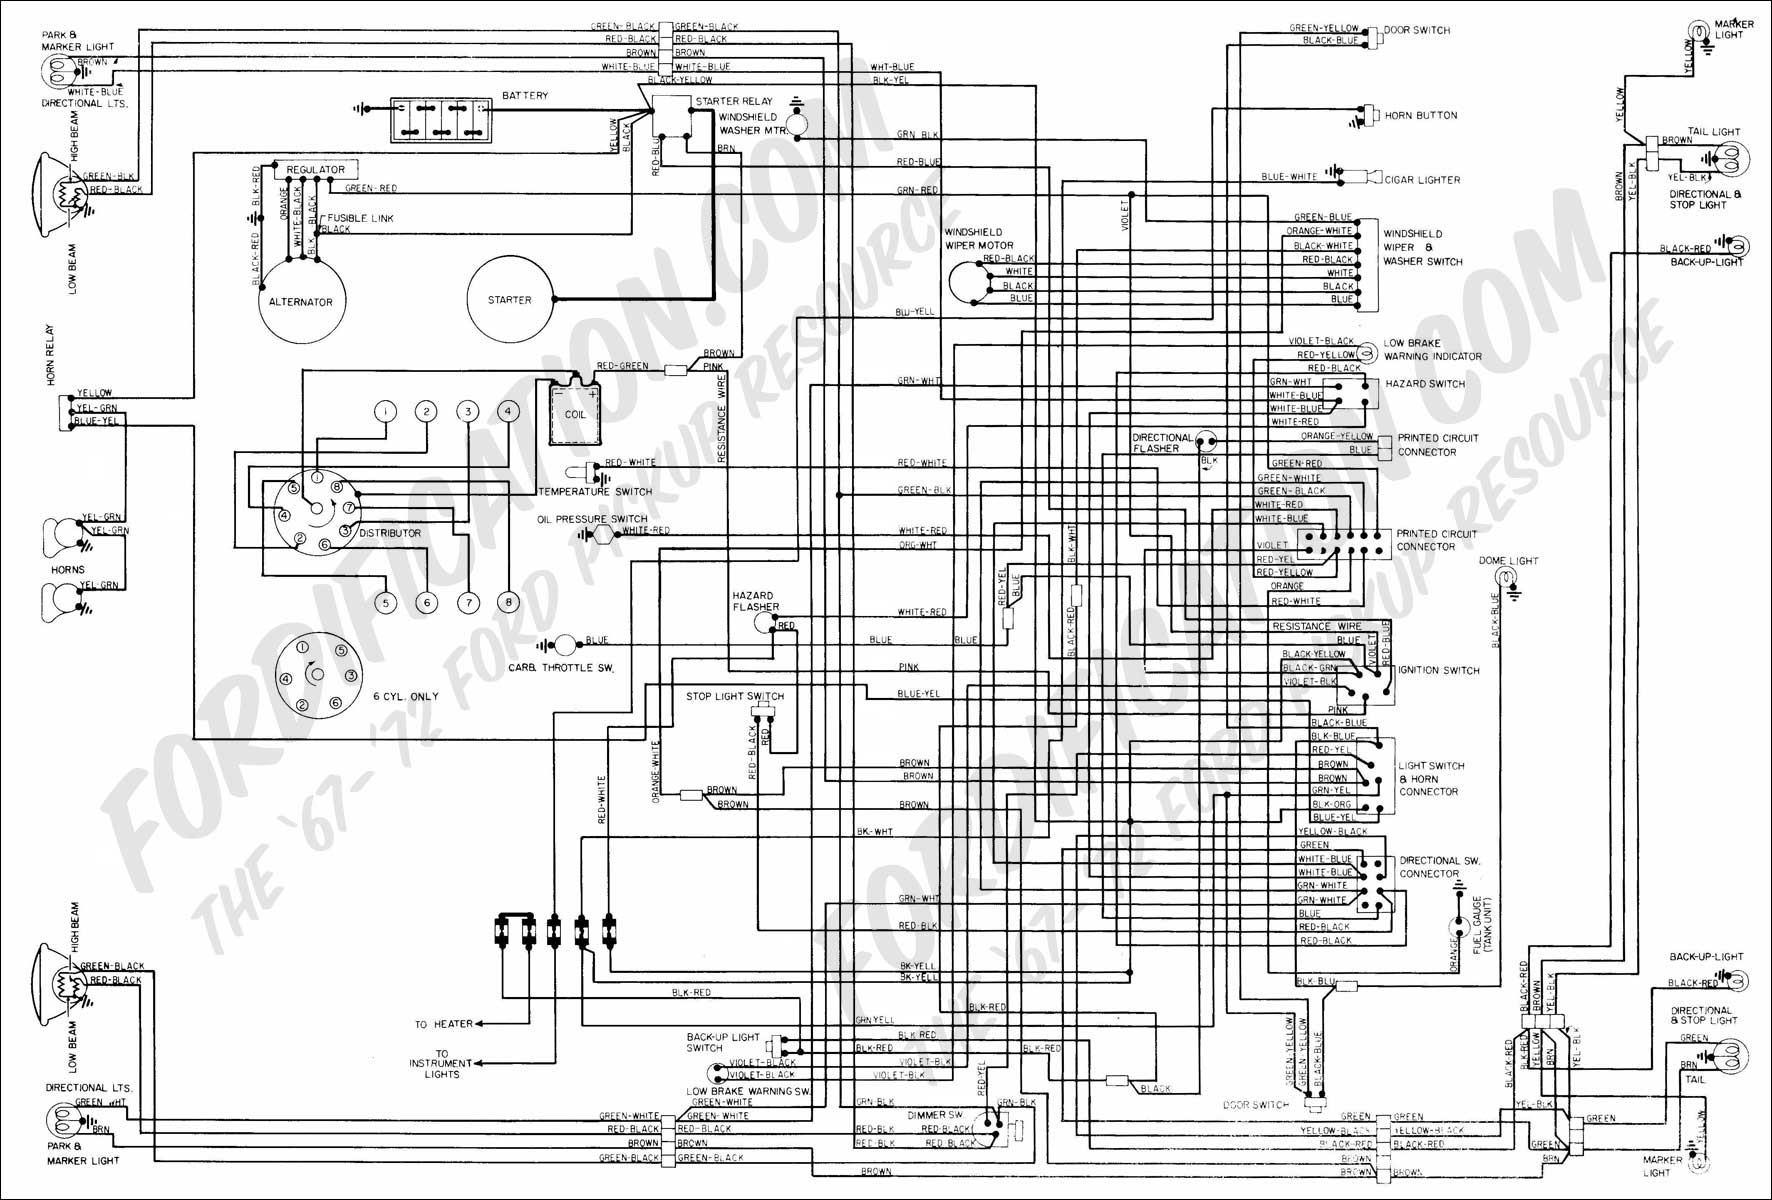 wiring diagram 72_quick 2002 ford f250 wiring diagram efcaviation com ford f250 wiring diagram at soozxer.org